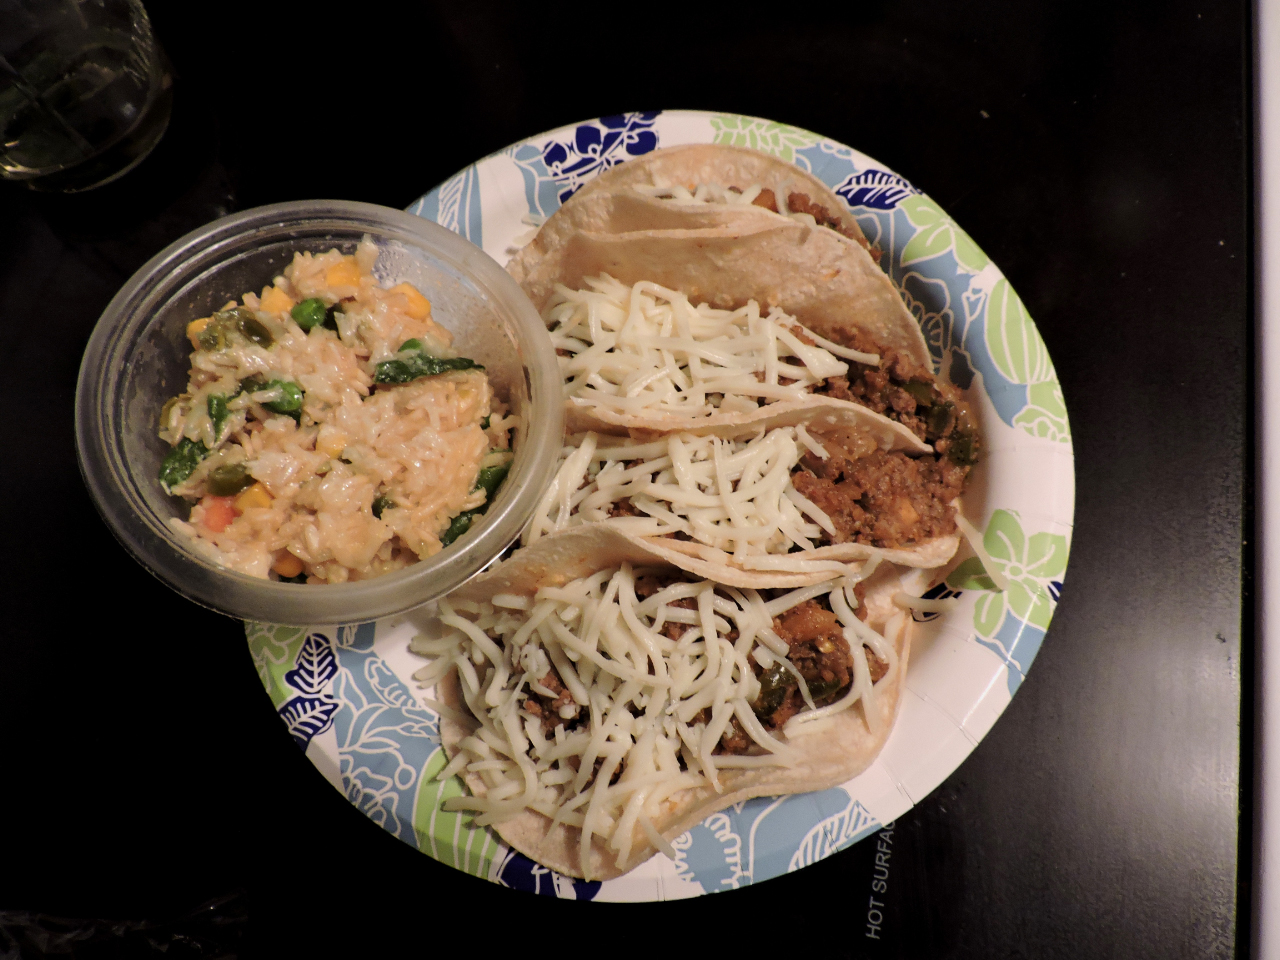 Turkey and Yam Spicy Tacos charm